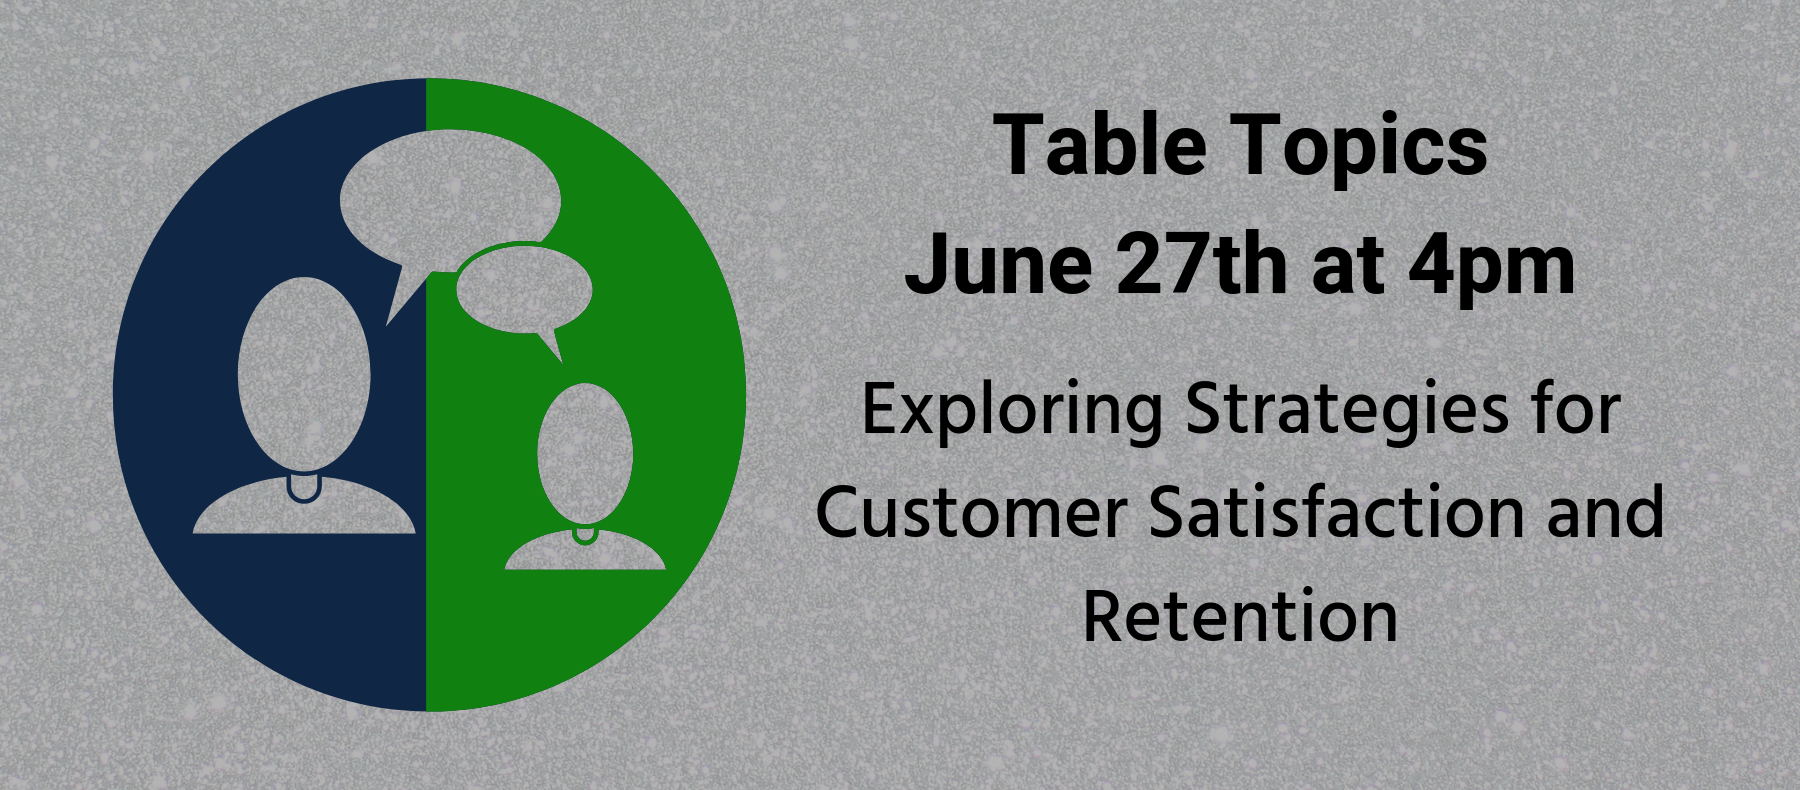 Table-Topics-5.29.2019.png